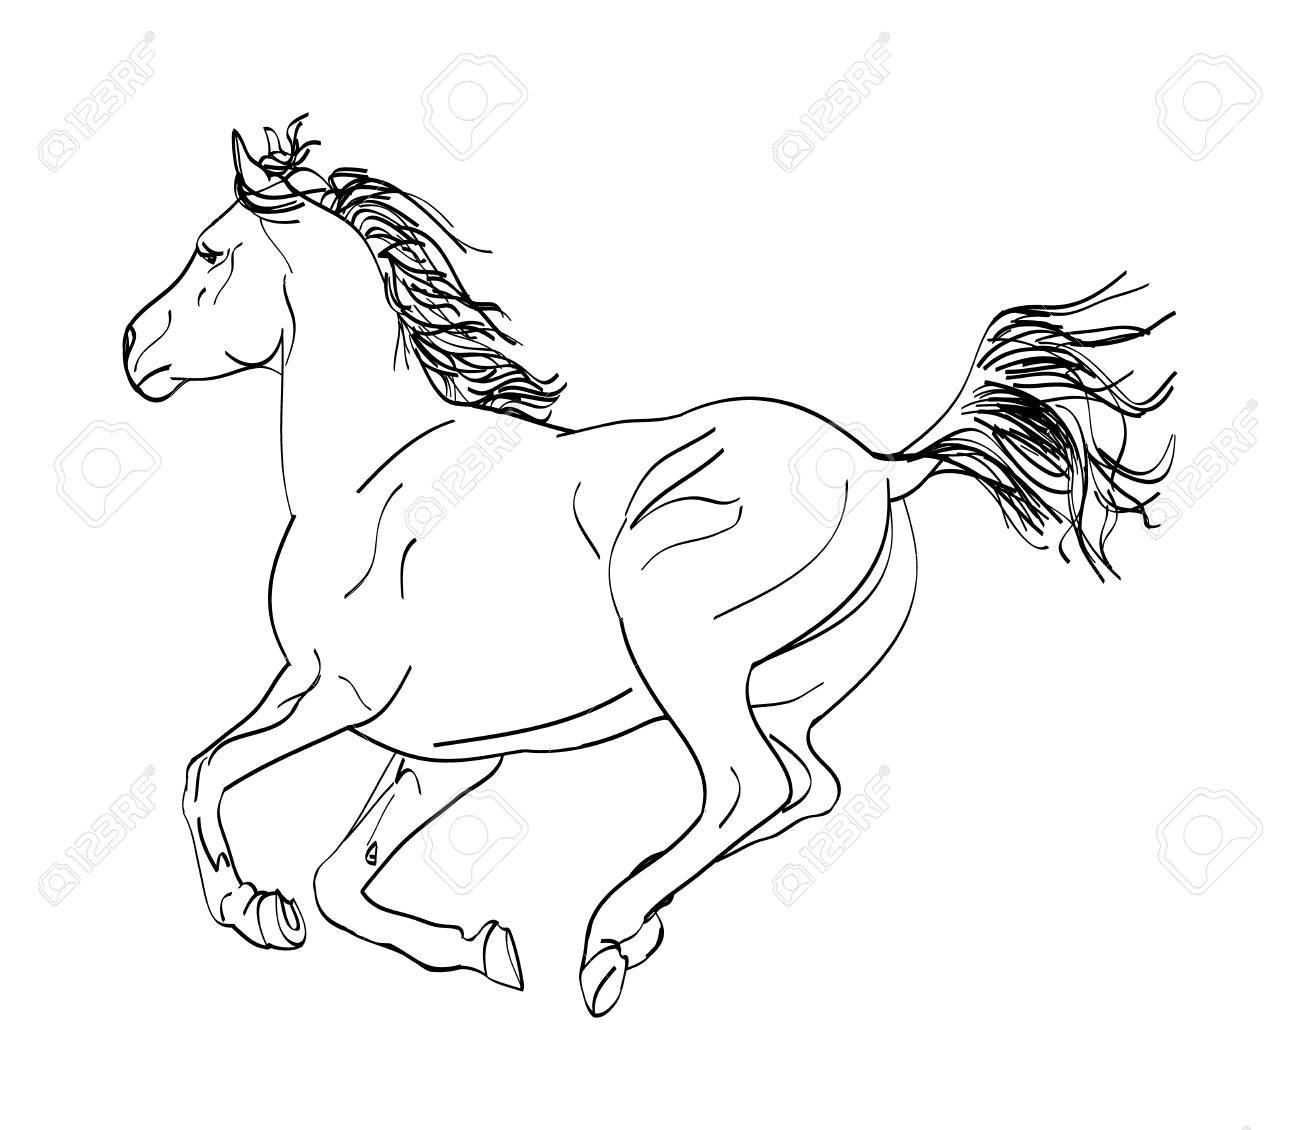 1300x1130 Graphic Image Of A Galloping Horse. The Outline Of A Horse